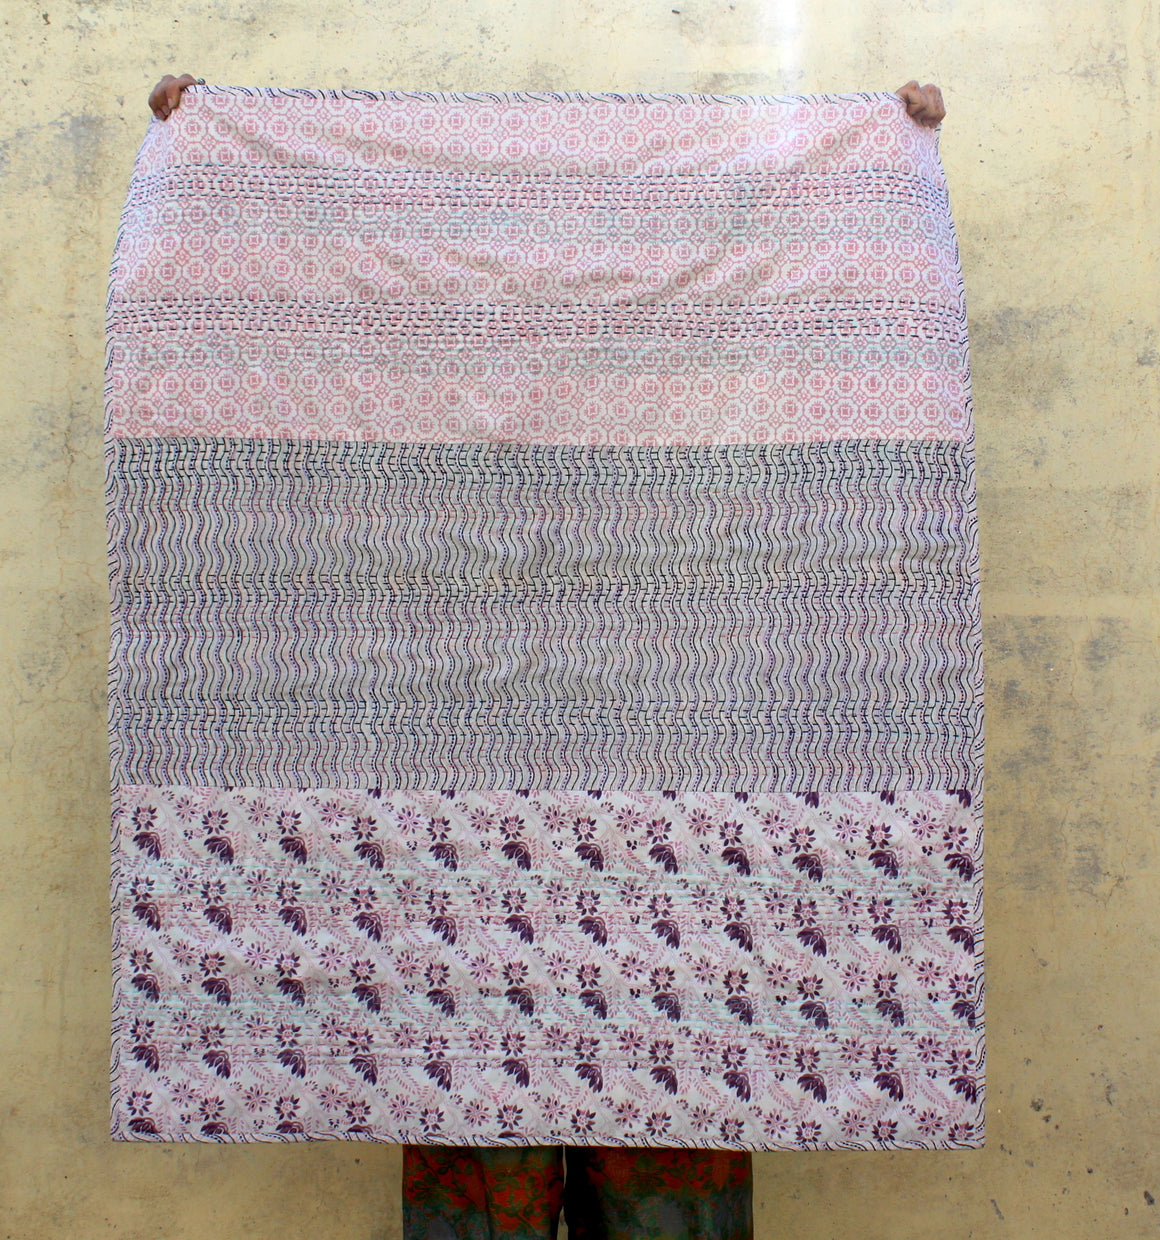 Kantha Stitch Upcycled Couch Throw in Pinks